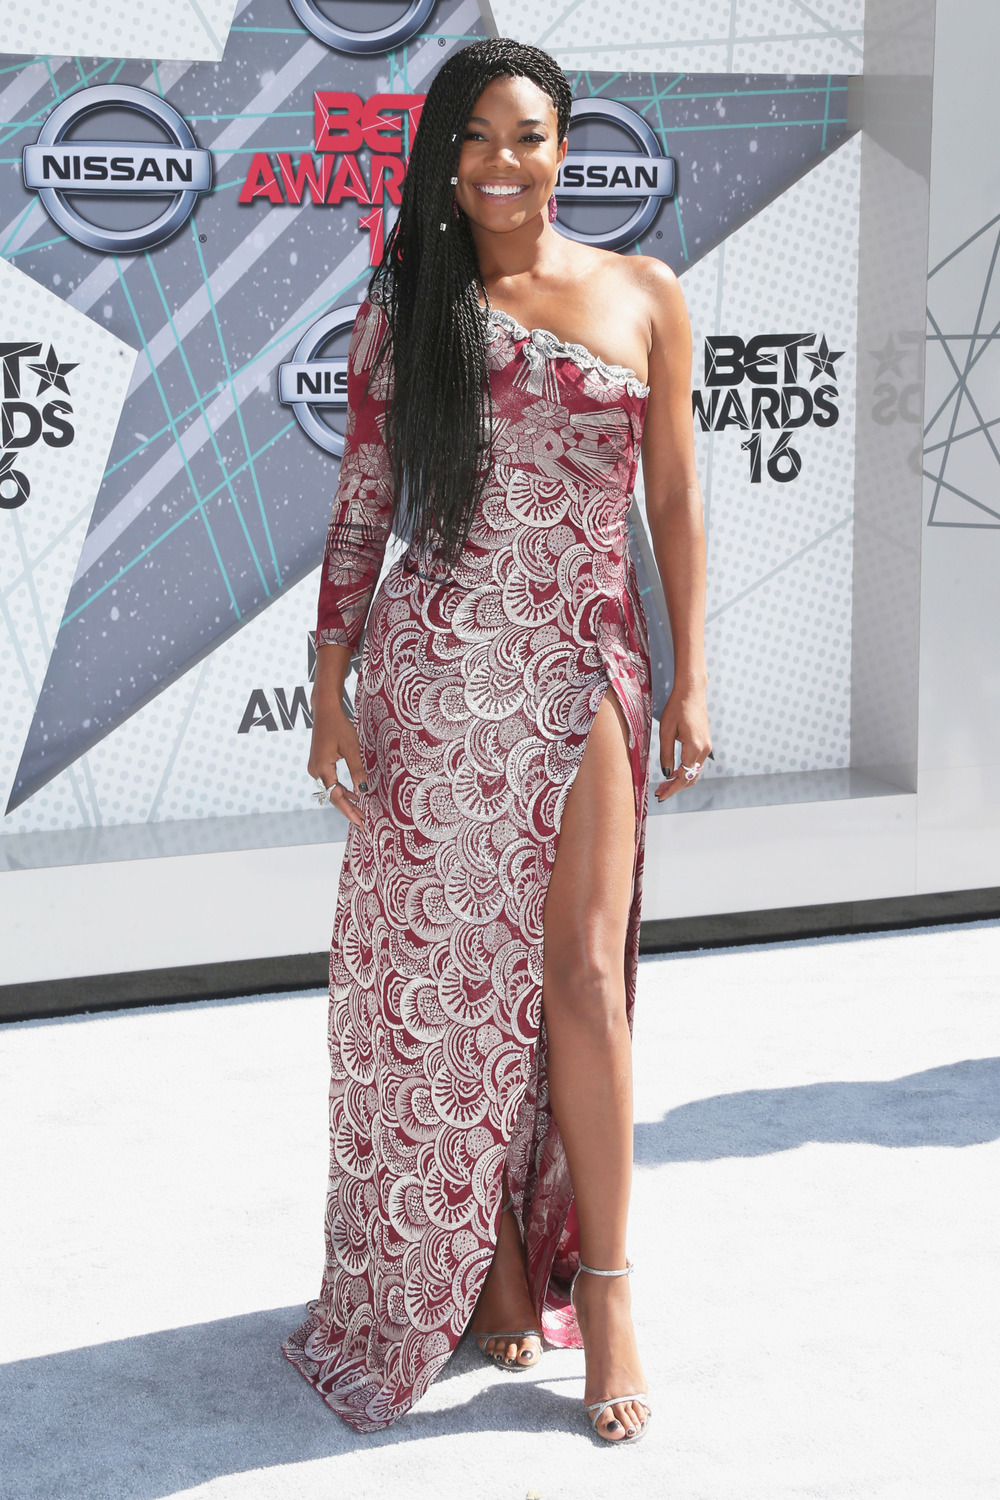 bet-awards-looks-009.nocrop.w1800.h1330.2x.jpg